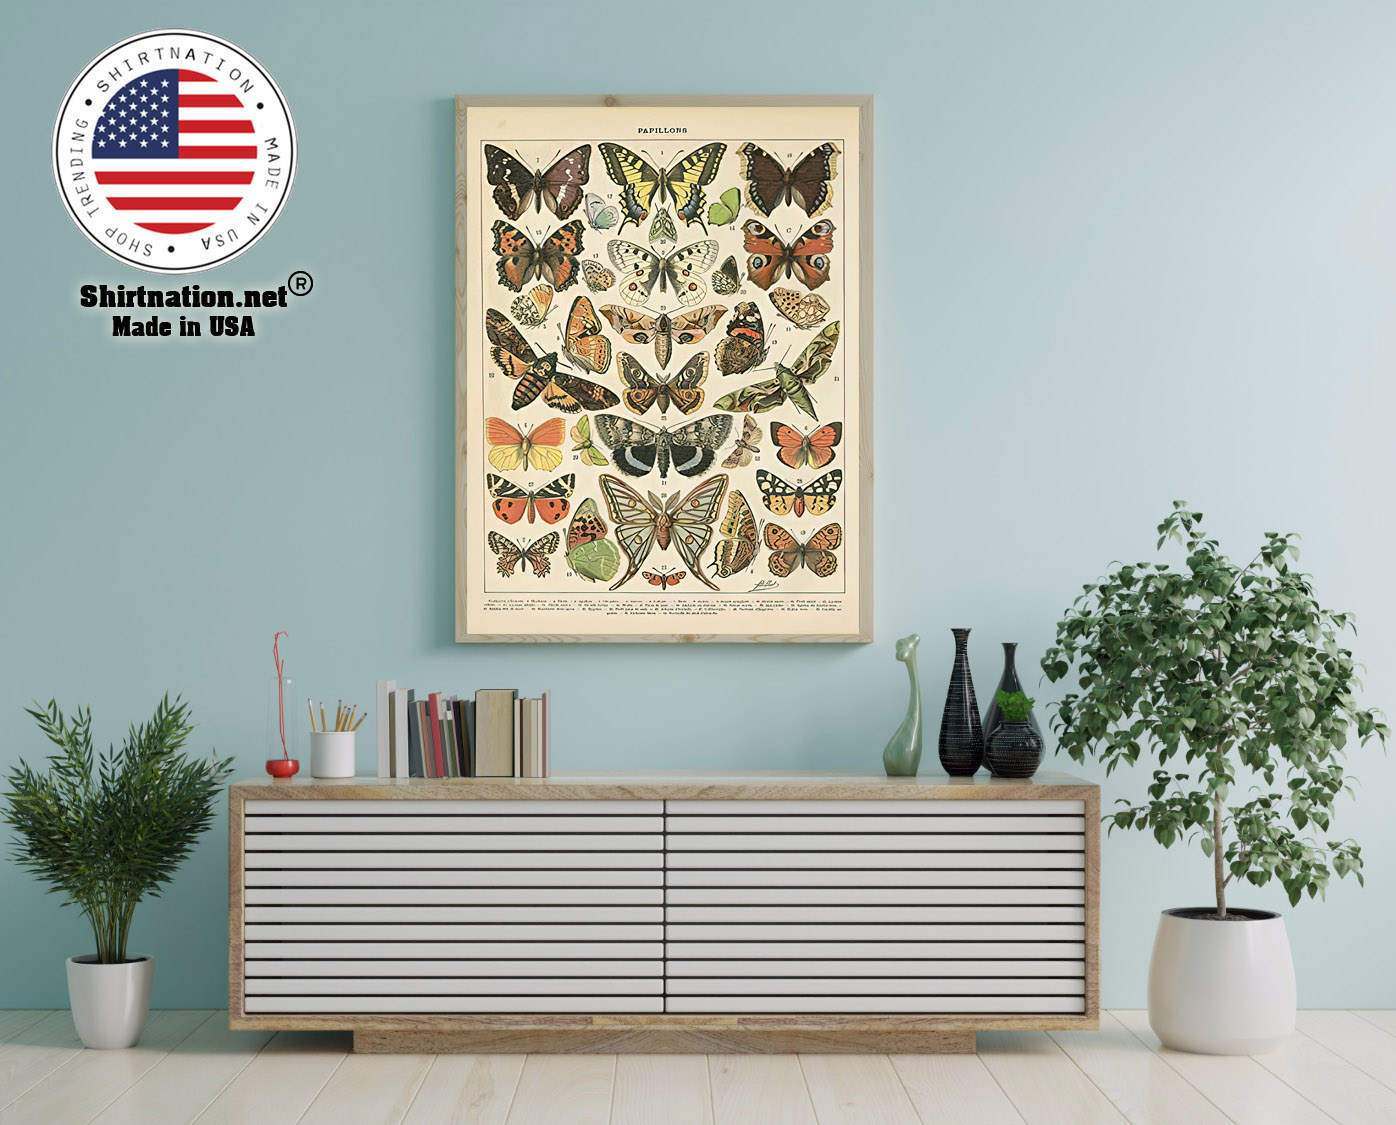 Popular vintage french types of papillons butterflies poster 12